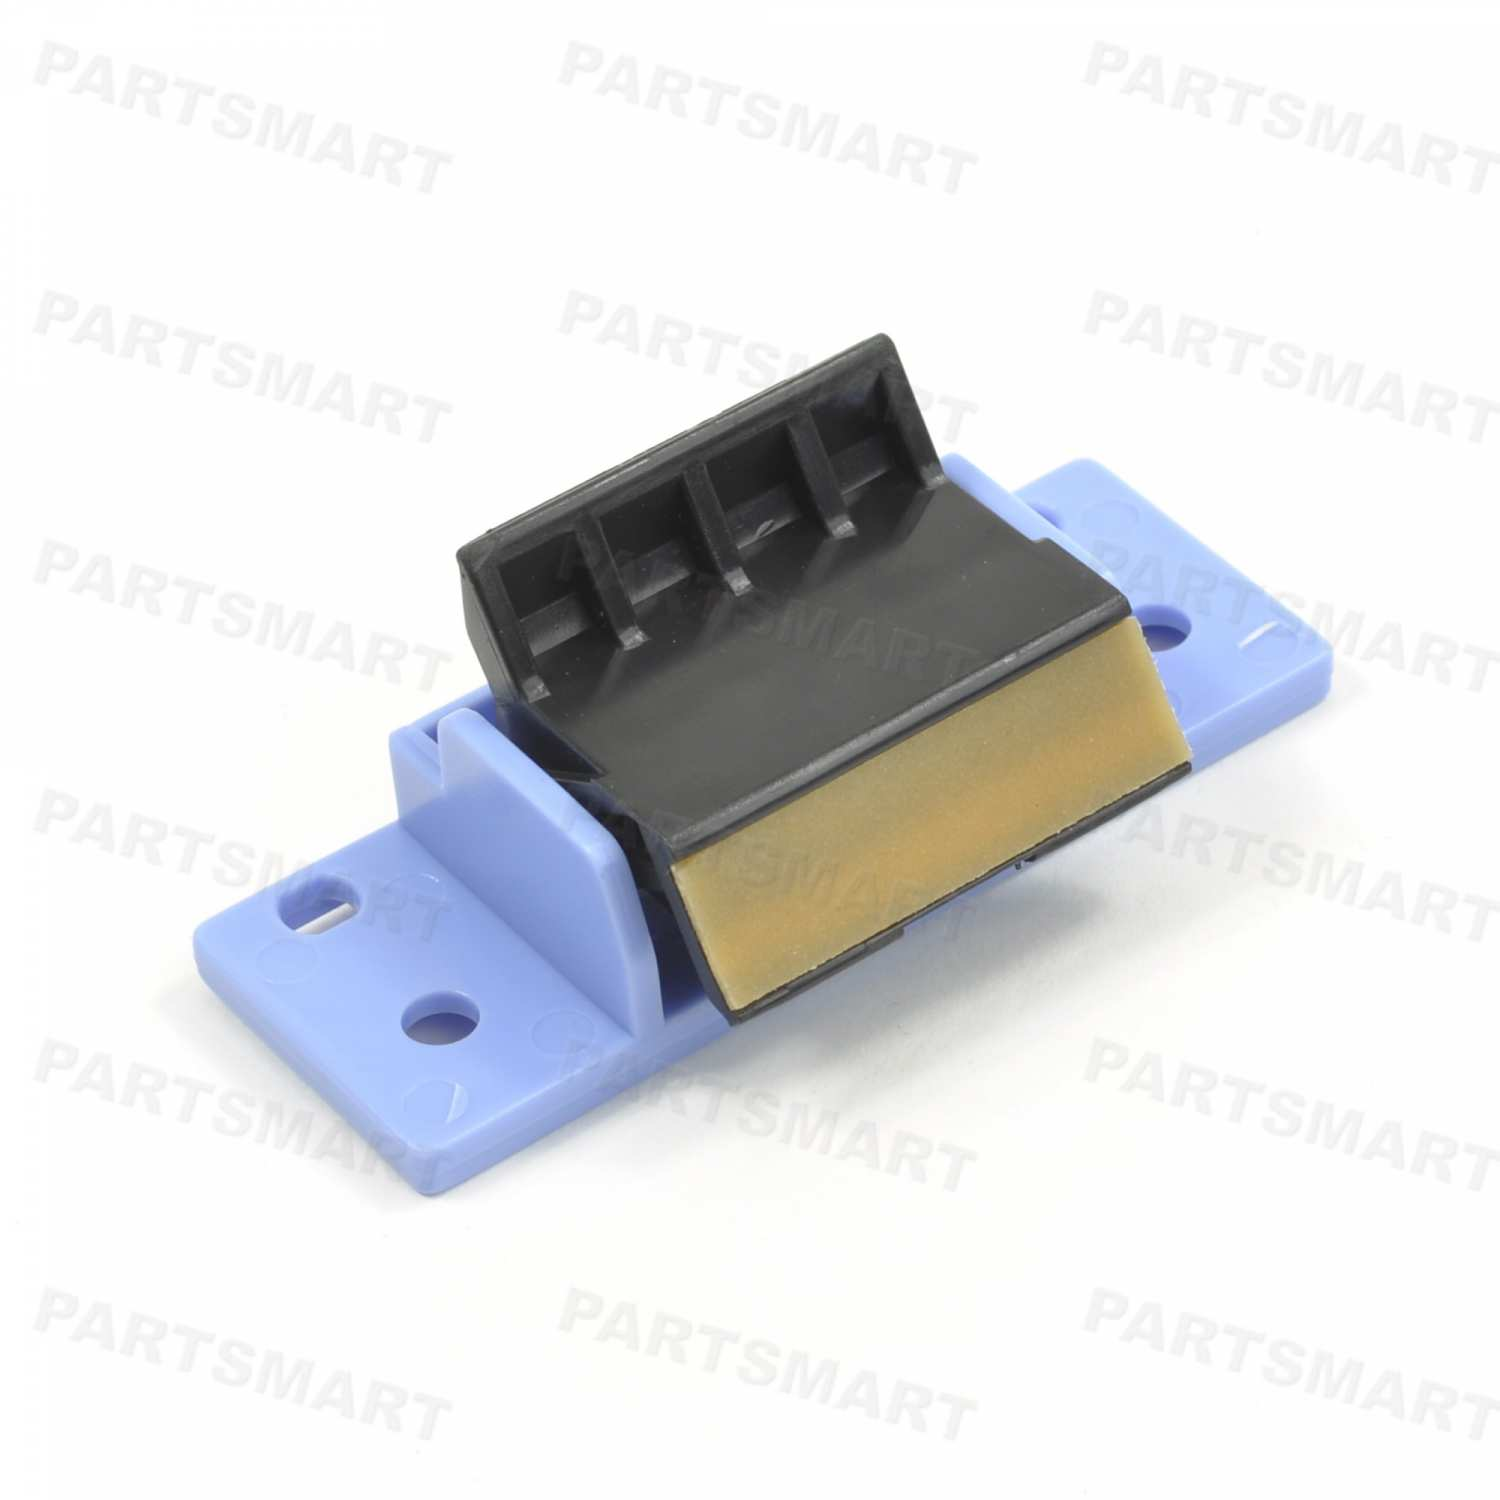 RM1-0648-000 Separation Pad Assembly for HP LaserJet 1010, LaserJet 1020